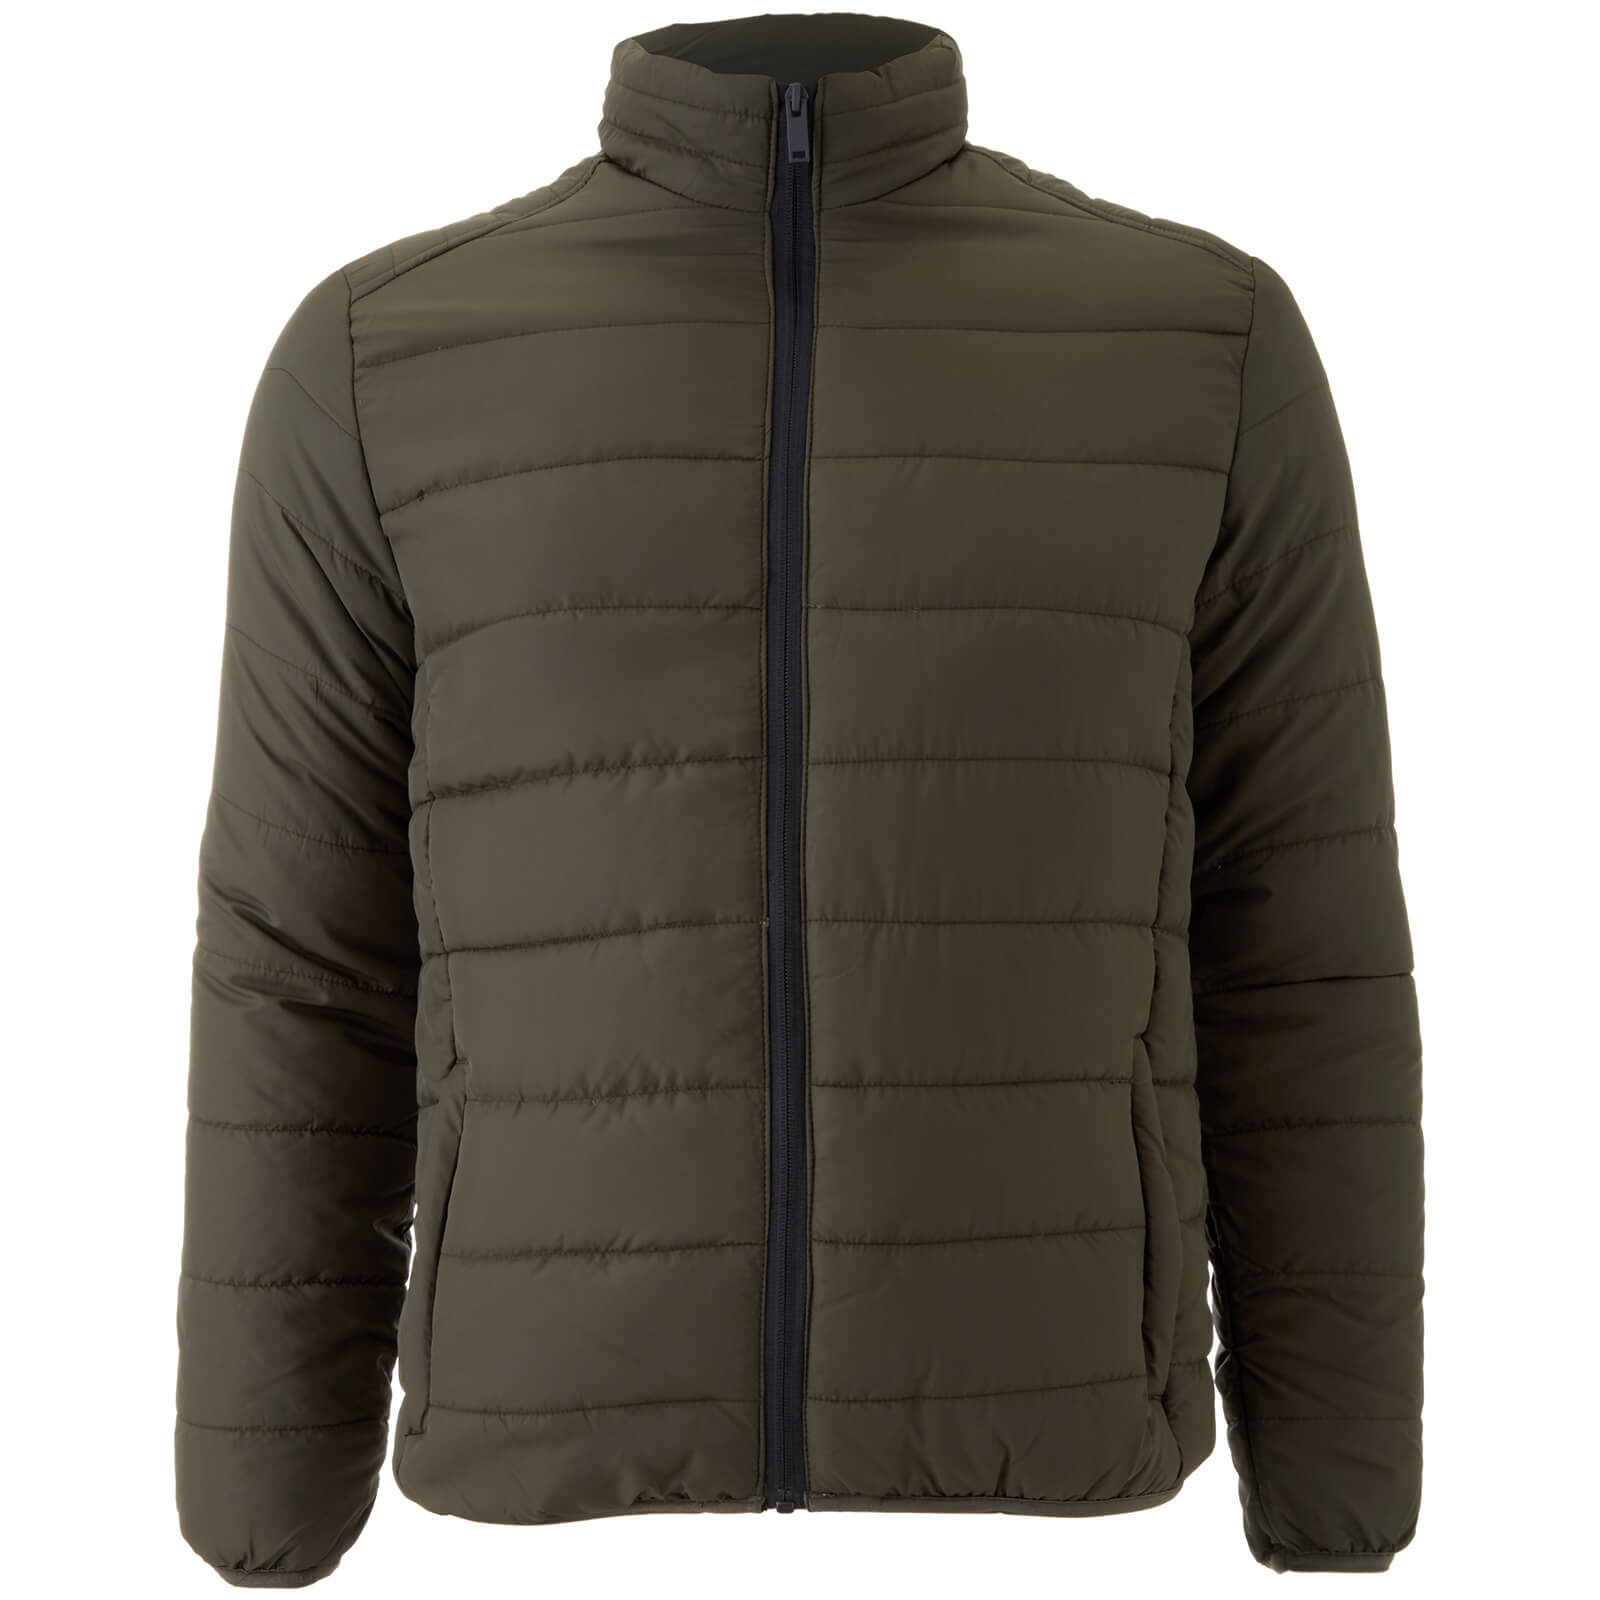 c9c21341f Brave Soul Men s Moritz Padded Jacket - Khaki Clothing